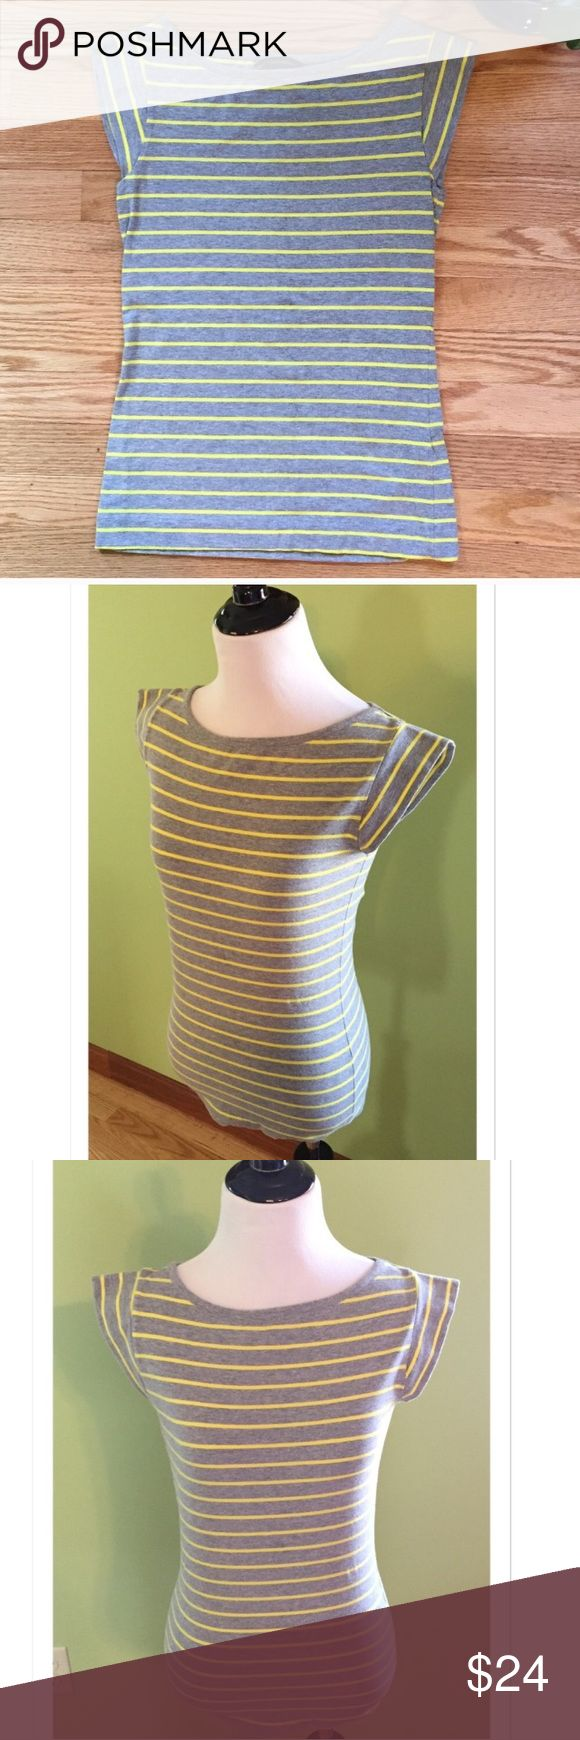 "French Connection Stretch Striped Cap Sleeve Tee Great striped Tee from French Connection. Featuring cap sleeves, this tee is 95% cotton; 5% elastane. Bust measures 14"" across; length 23"". EUC French Connection Tops Tees - Short Sleeve"